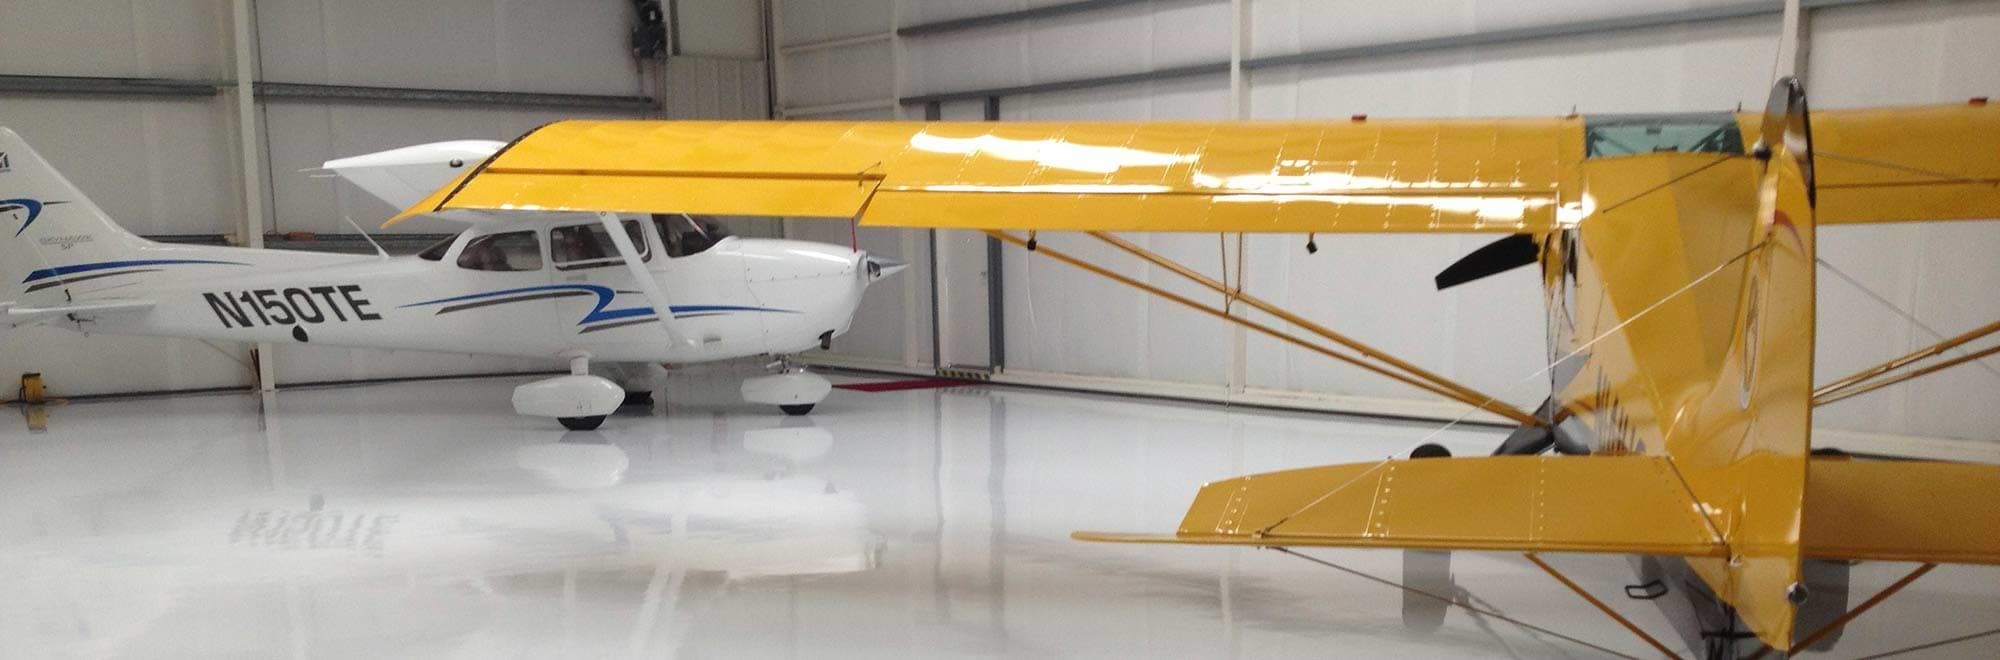 Epoxy Flooring in Airplain hanger